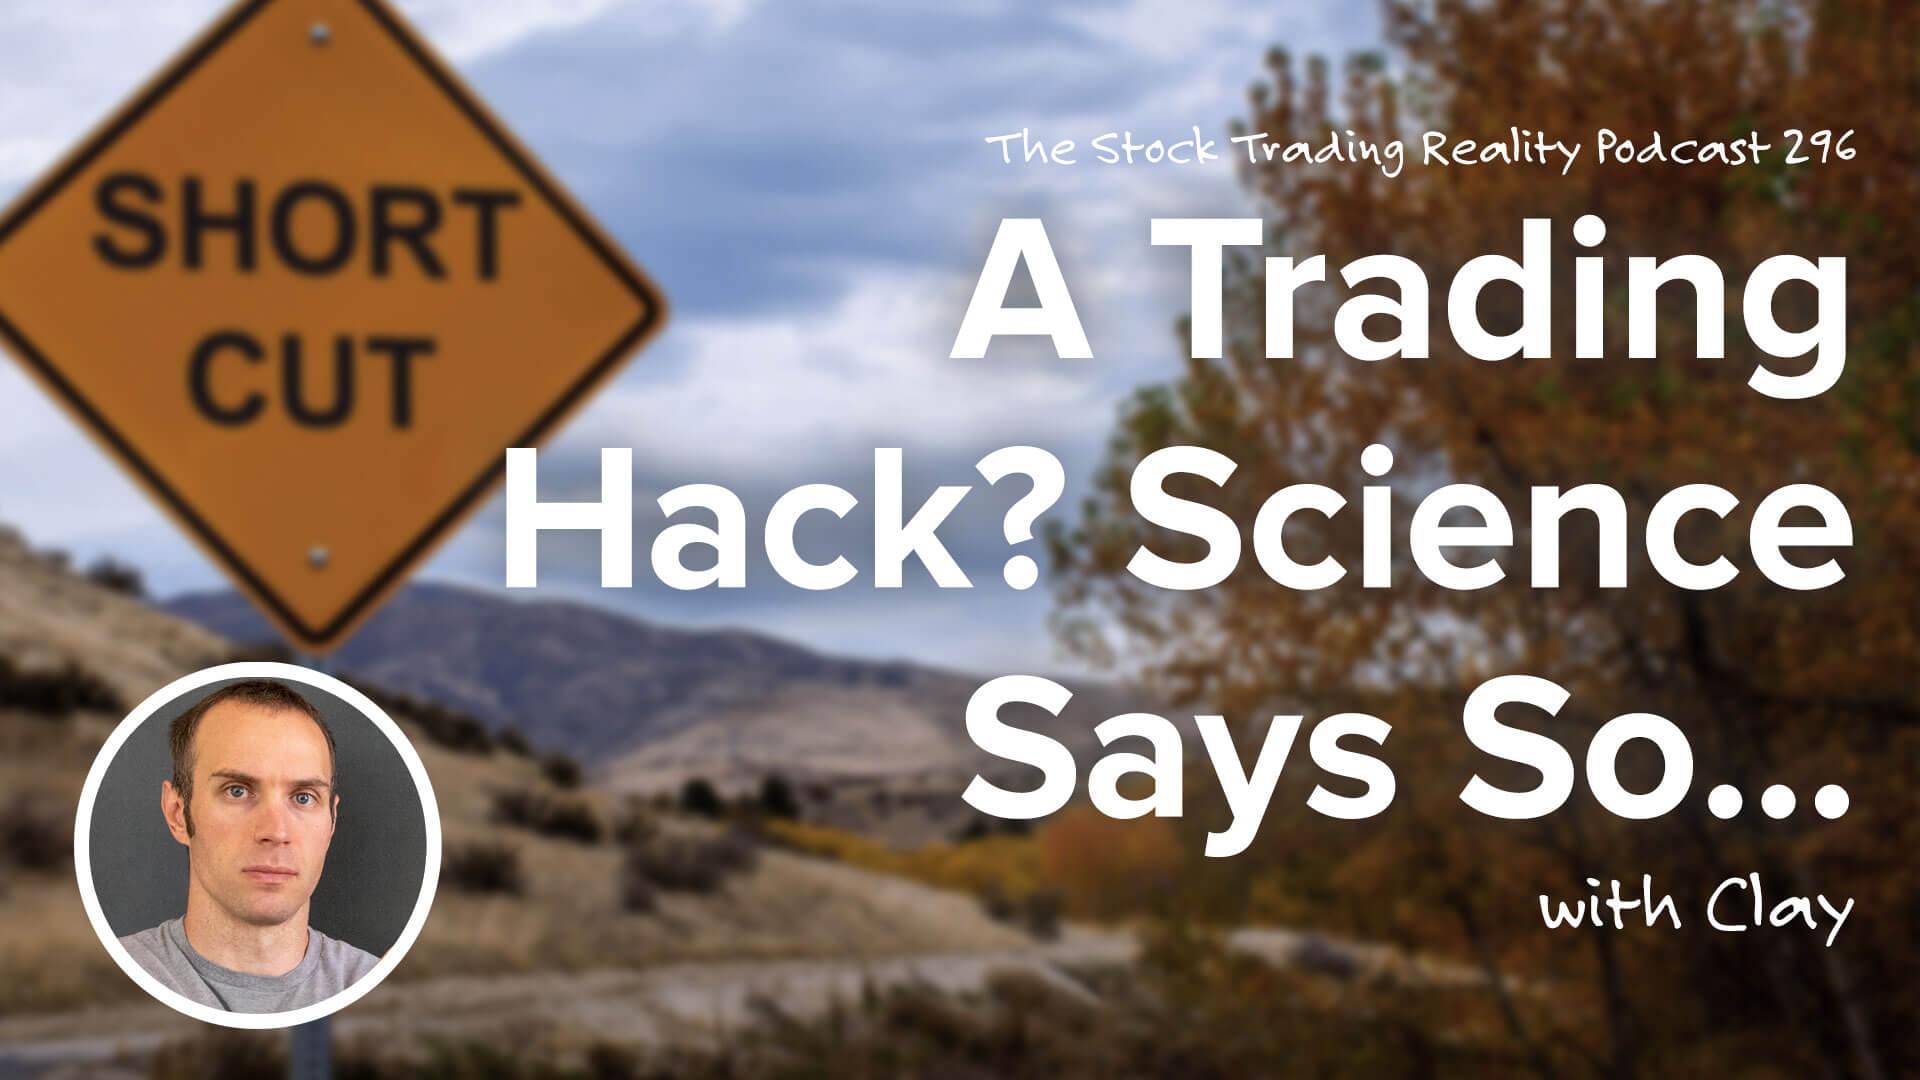 A Trading Hack? Science Says So... | STR 296